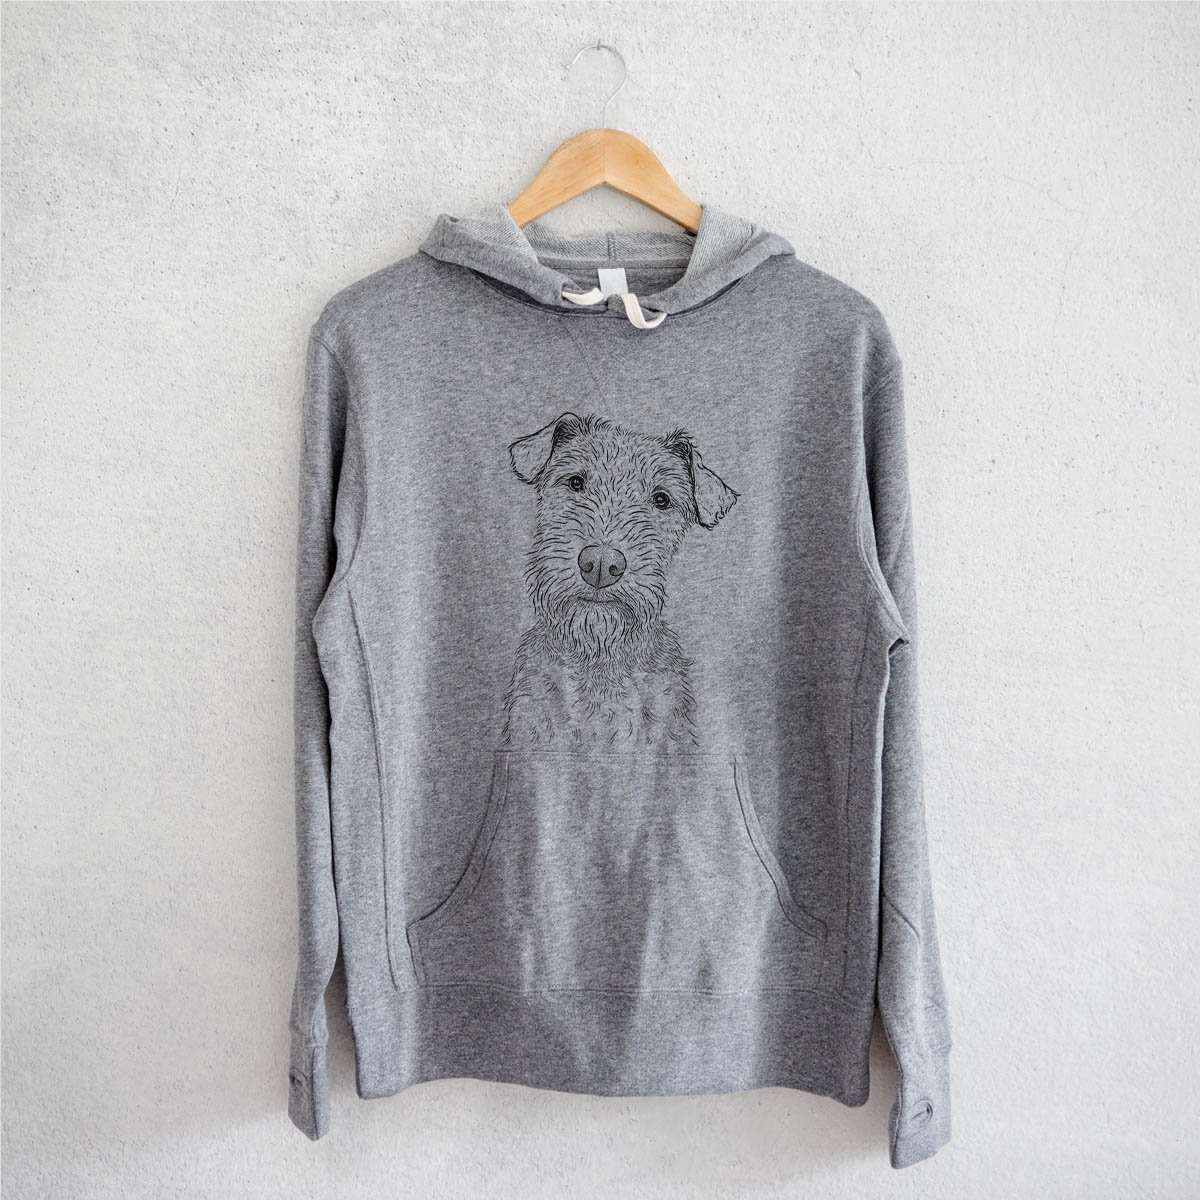 Kiara the Welsh Terrier - French Terry Hooded Sweatshirt